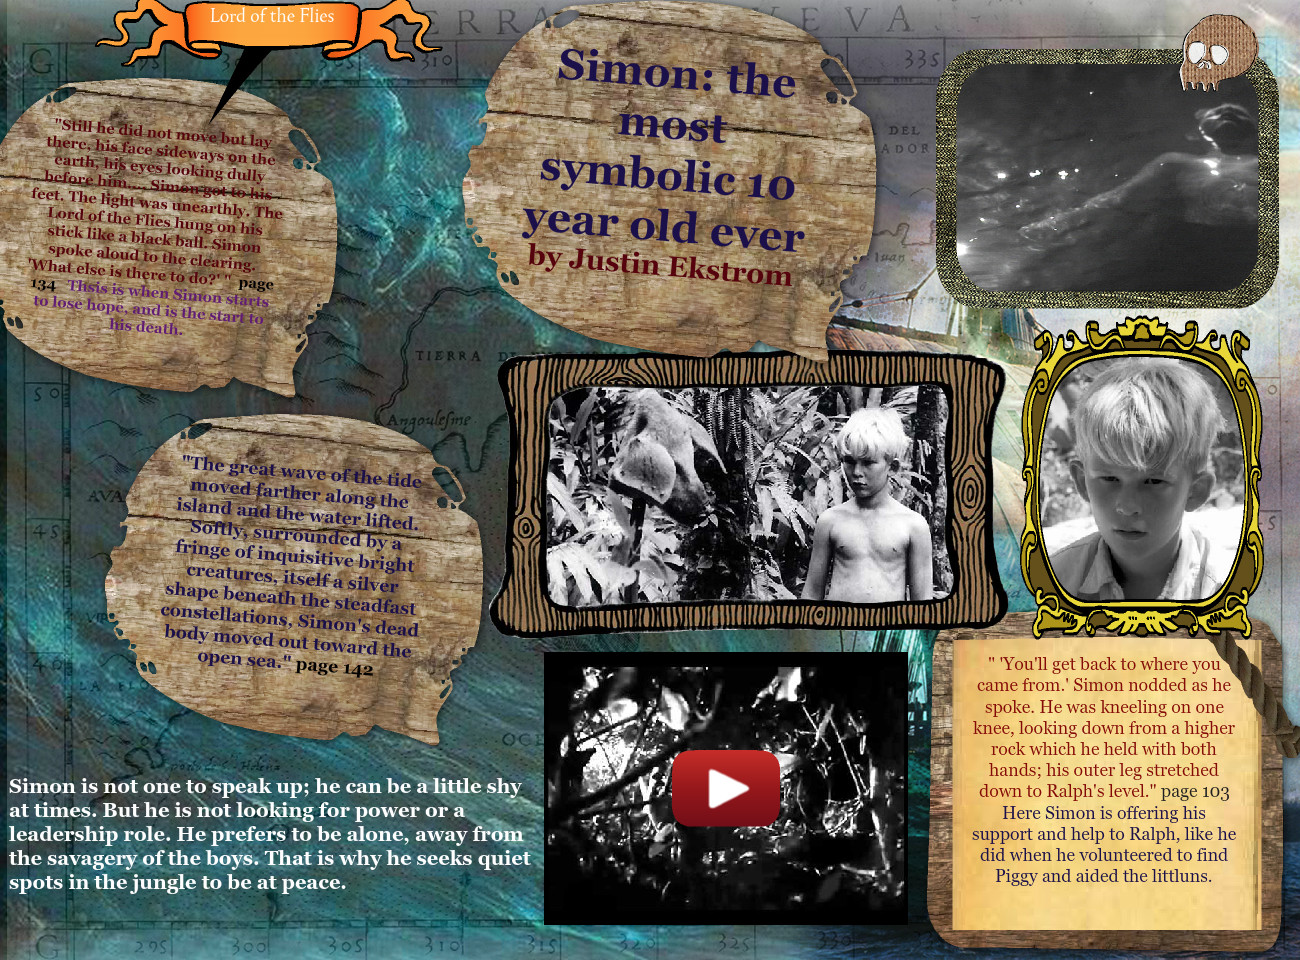 Simon: The Most Symbolic 10 Year Old Ever